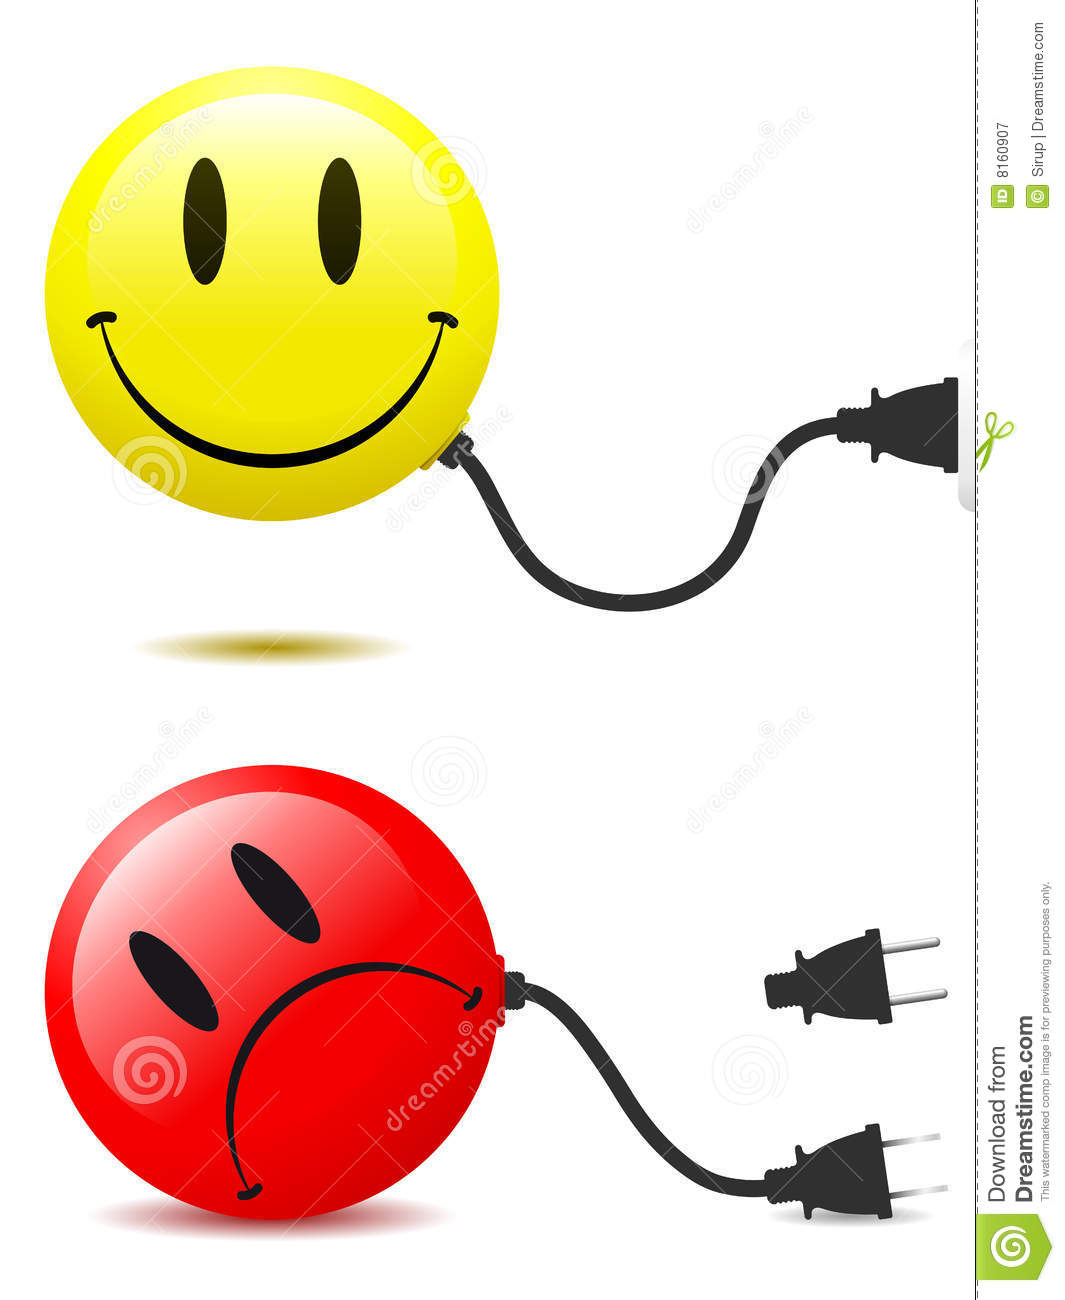 Select Reliable And Trustworthy Workforce Solutions Provider further Current Project City House Render Images Floor Plans And Sketches likewise Flats Houses Db furthermore Royalty Free Stock Photography Happy Unhappy Smiley Face Connector Plug Image8160907 besides Dresser Wardrobe Cad Section 3. on house electrical plan